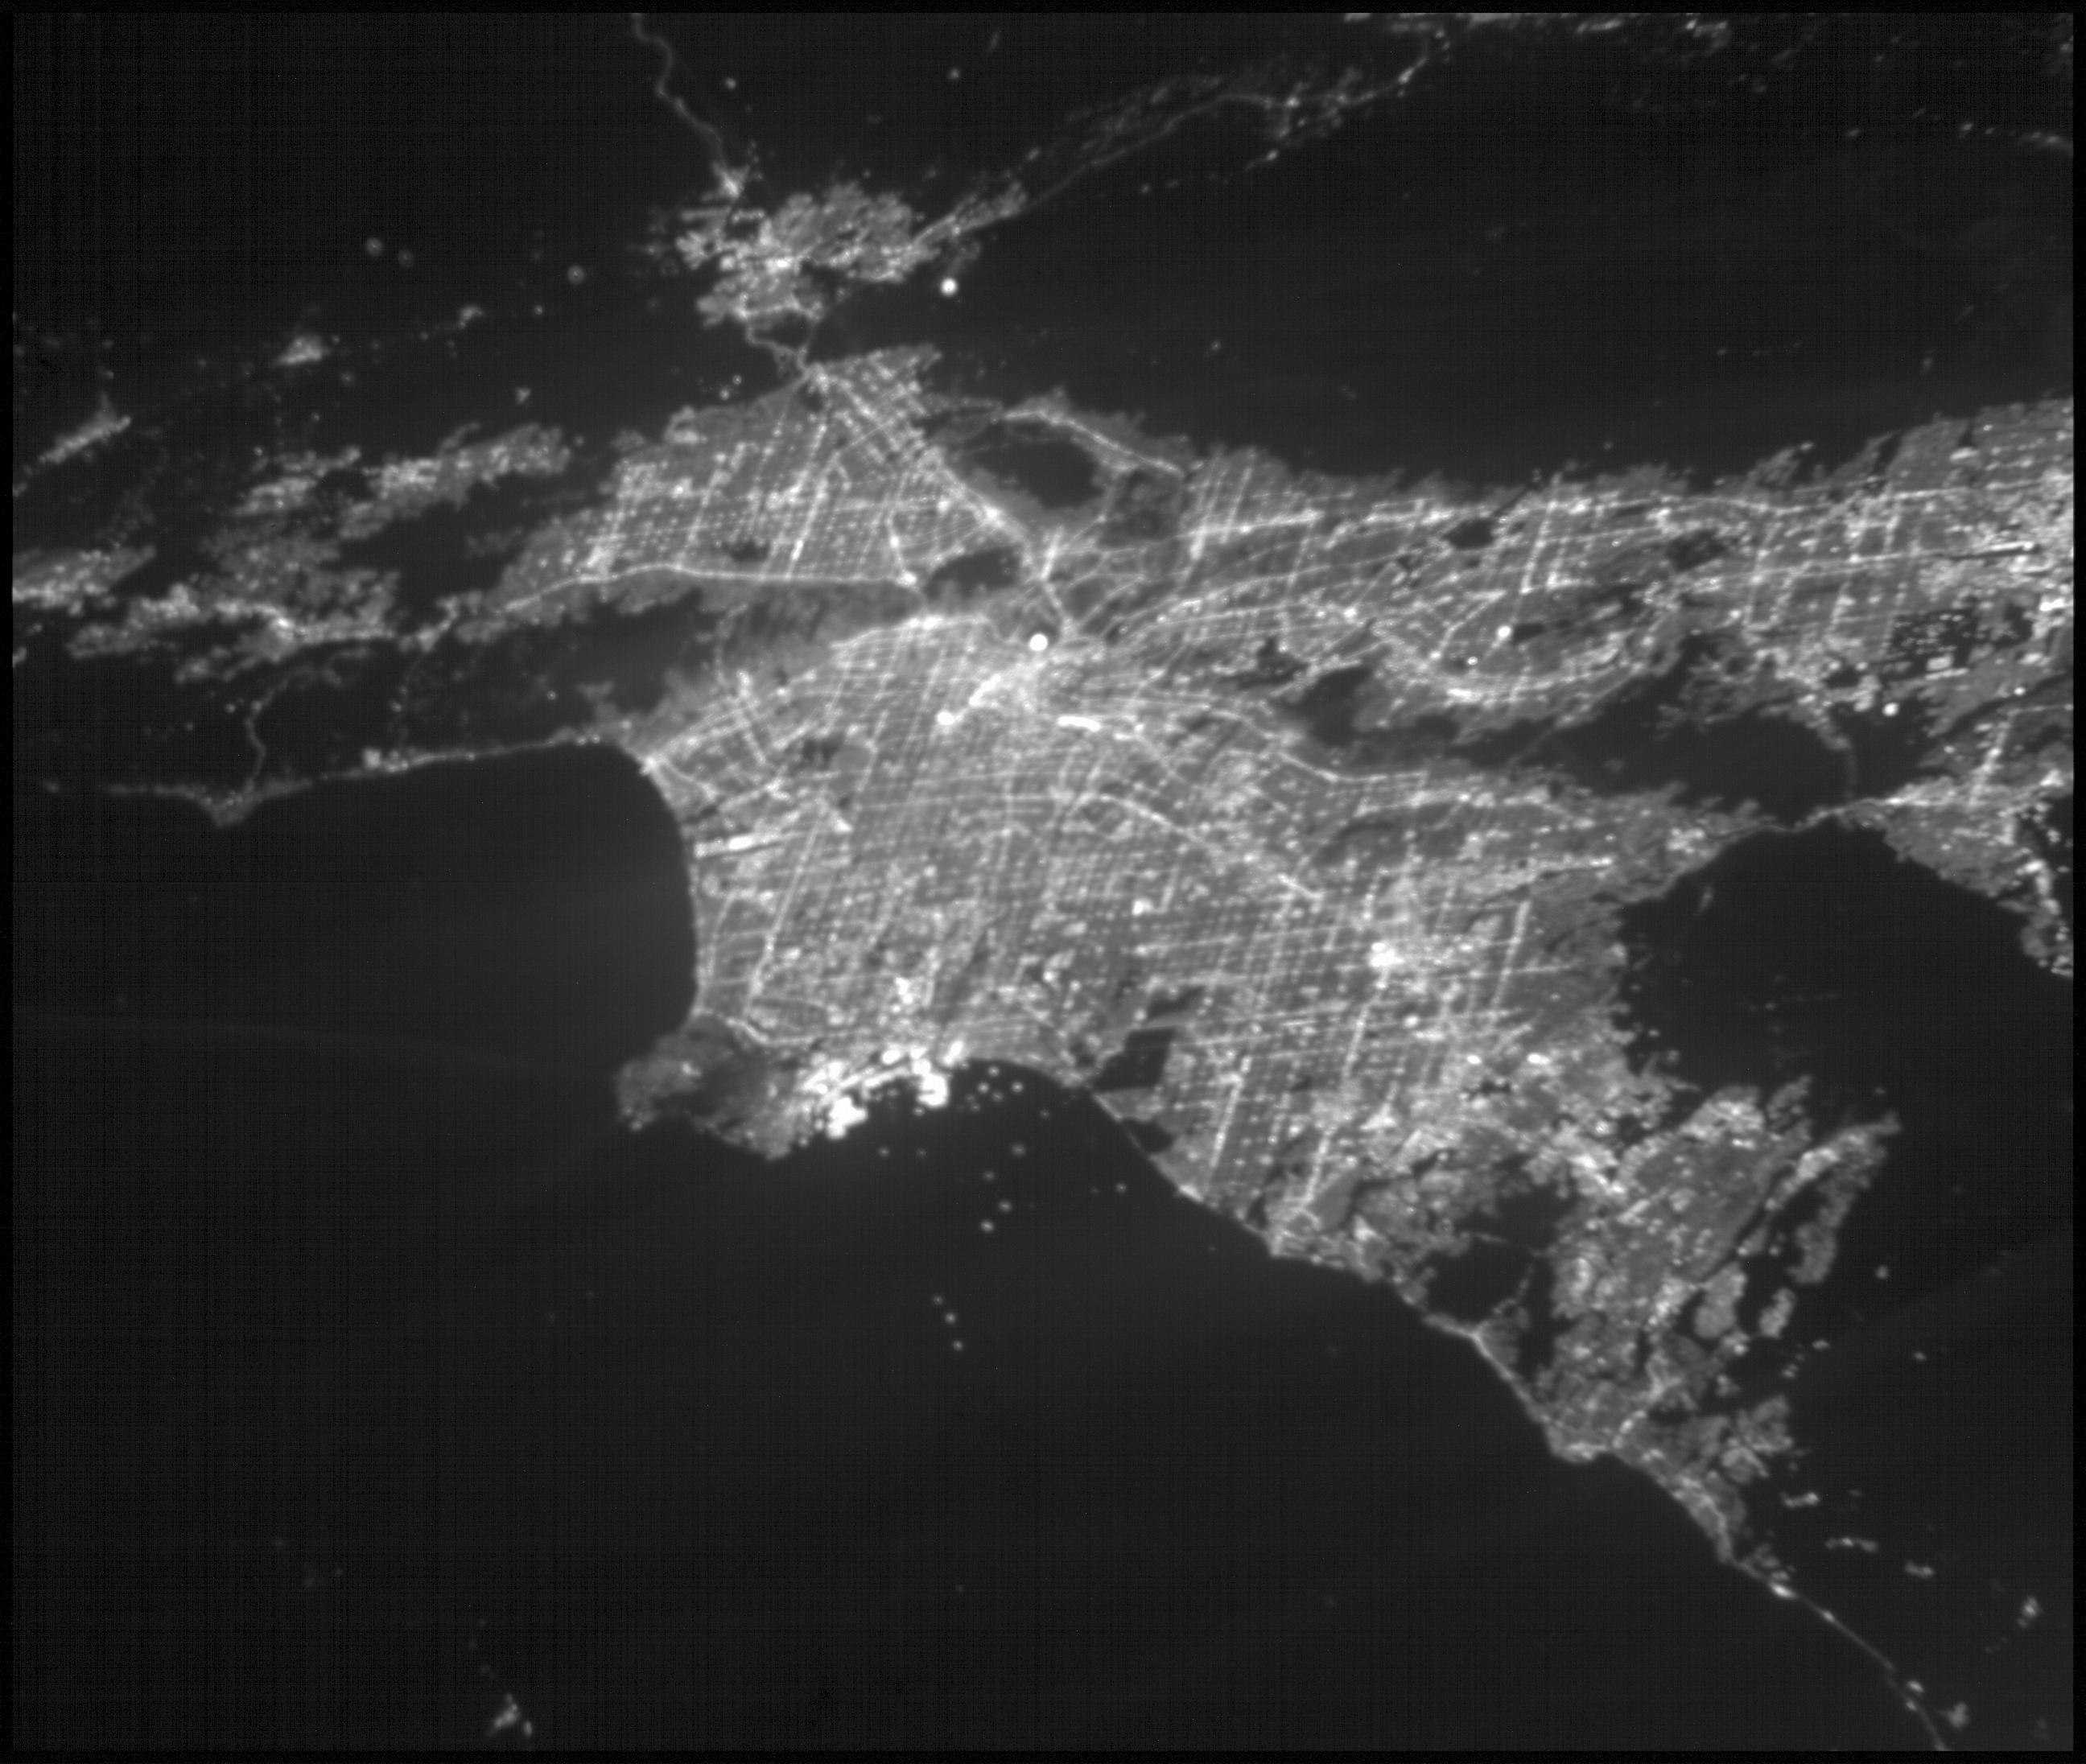 This image of the greater Los Angeles area was taken on March 29, 2019 by ASTERIA, the Arcsecond Space Telescope Enabling Research in Astrophysics satellite. The Port of Long Beach is visible near the center of the image.